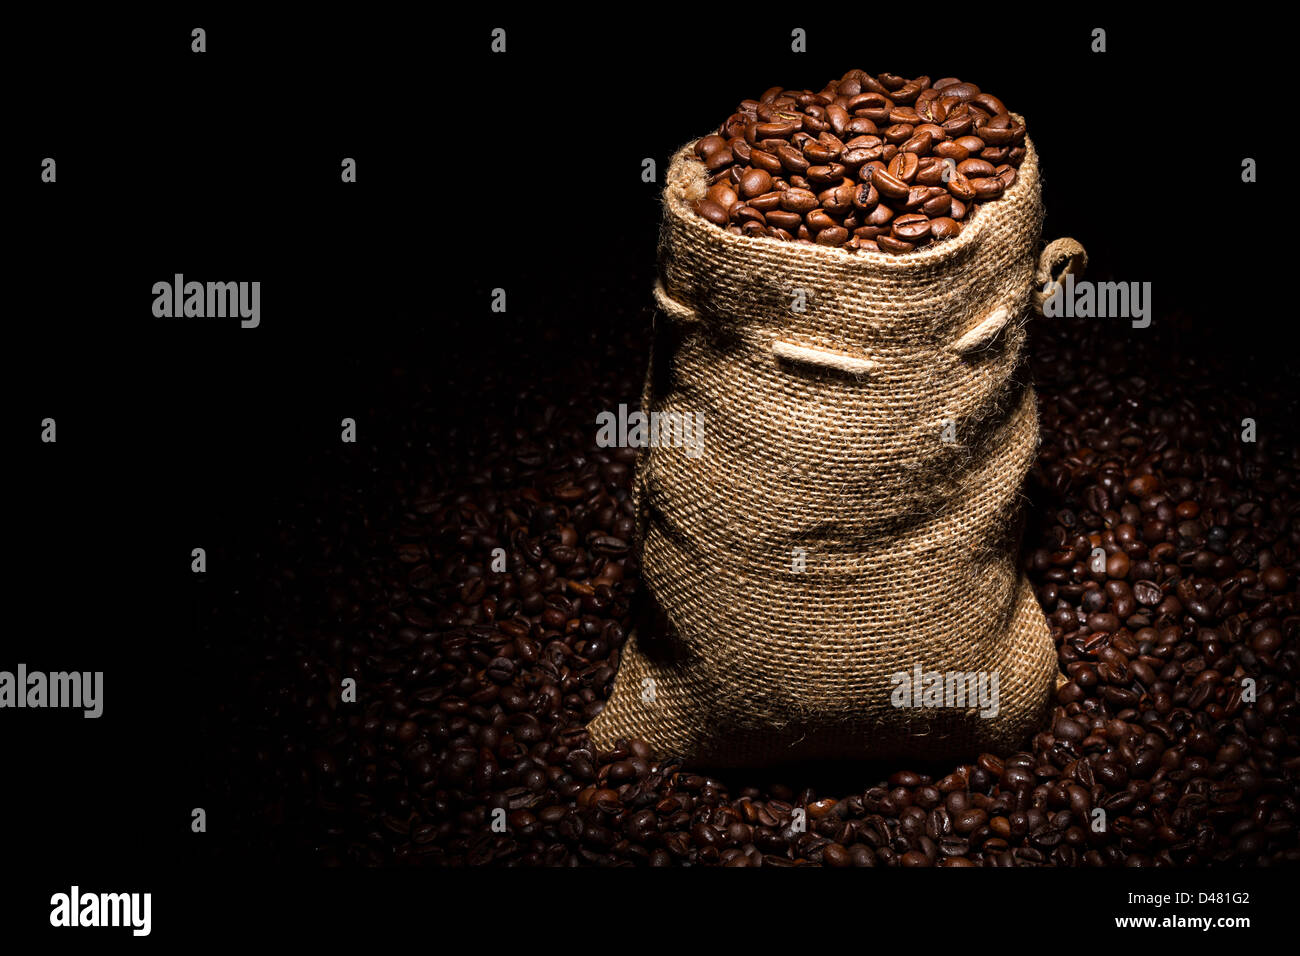 bag filled with coffee beans in spotlight - Stock Image